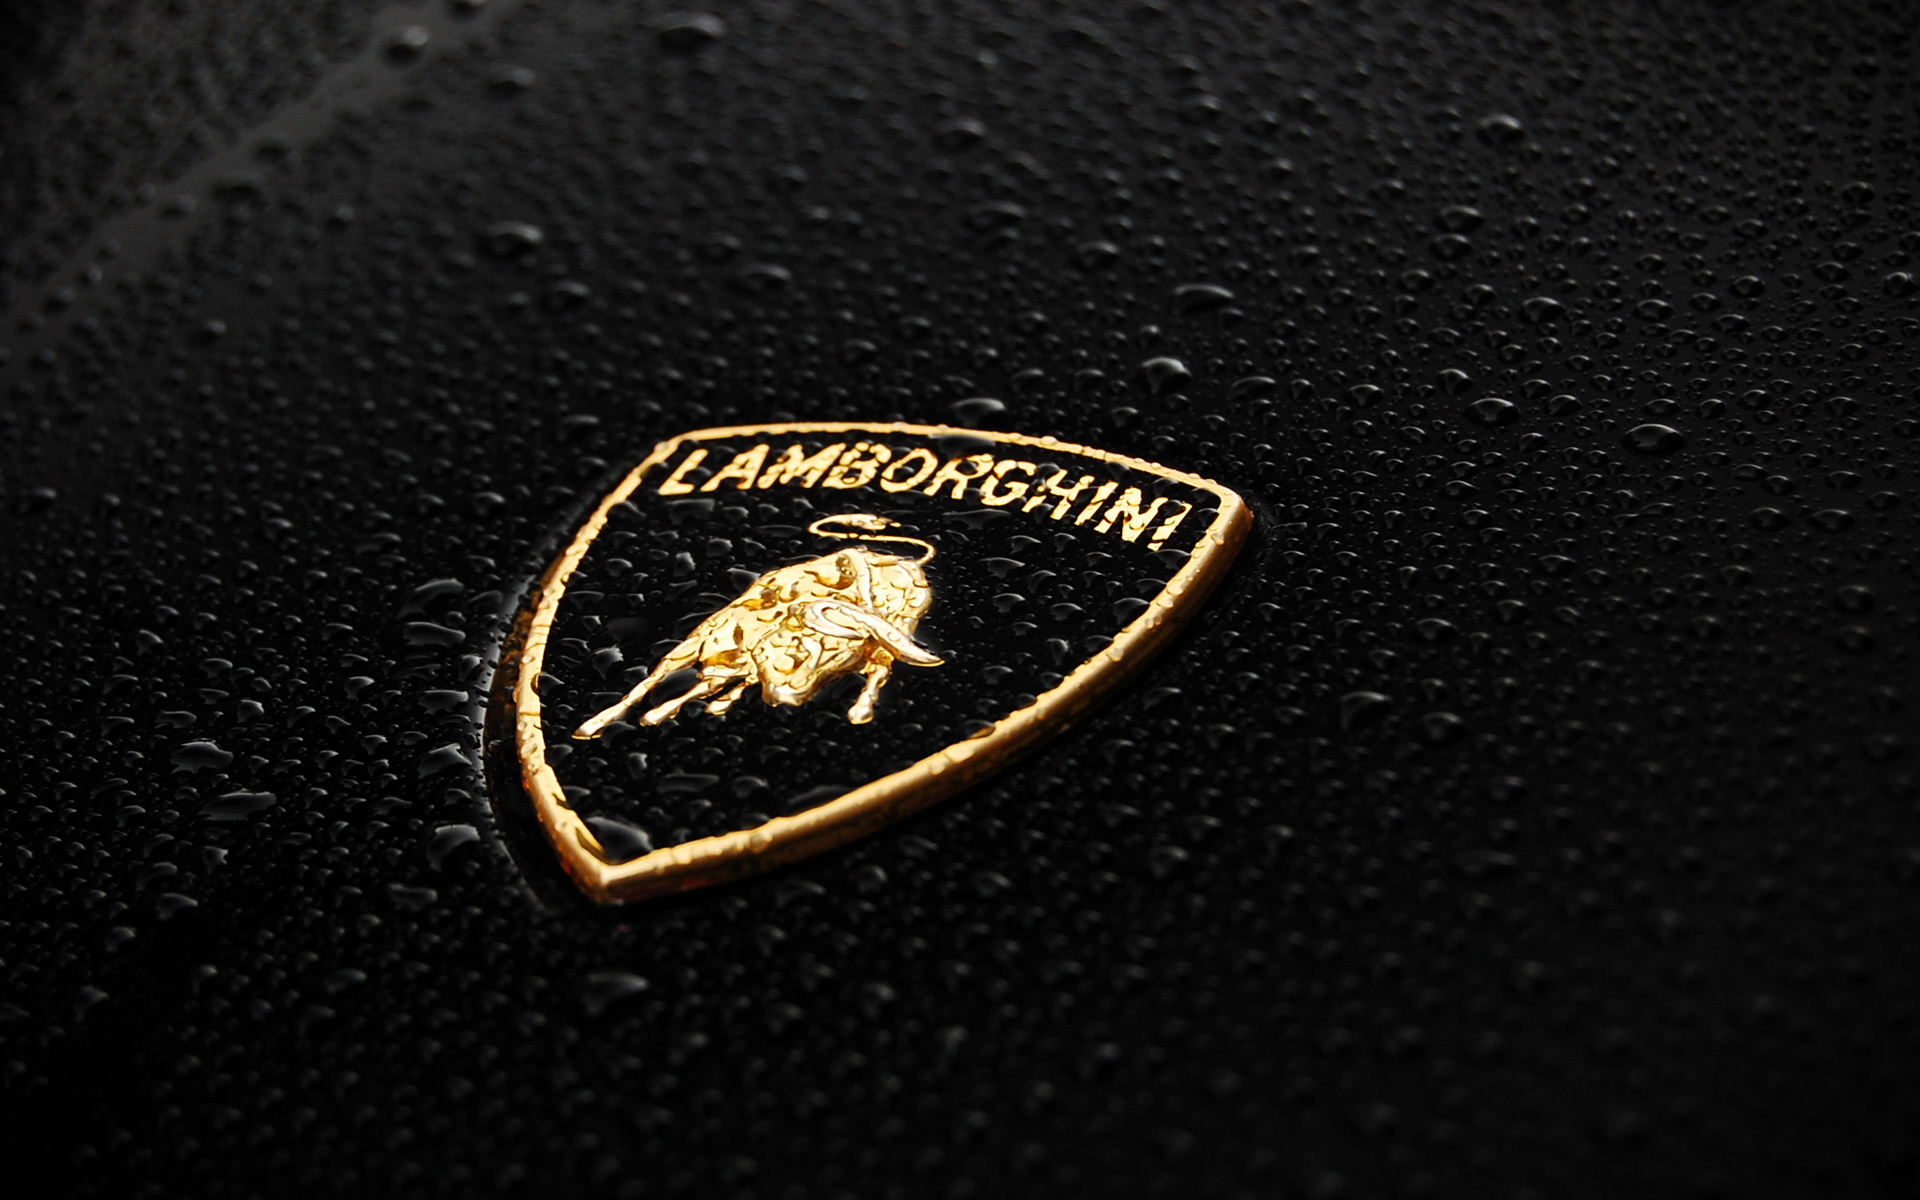 Lamborghini Logo Wallpaper Hd Car Wallpapers Id 2985